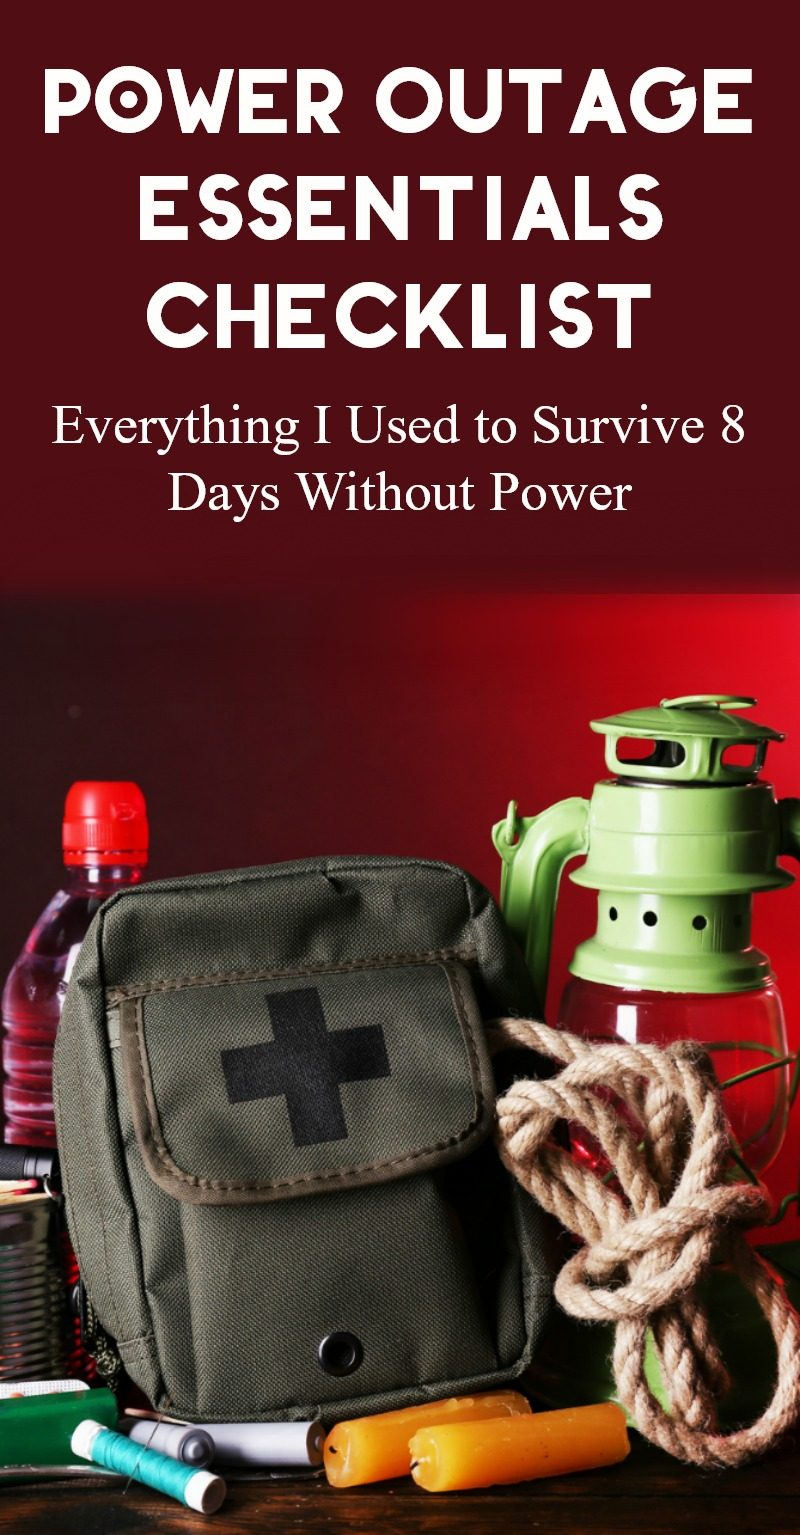 I'm sharing everything I used to survive 8 days without power, plus a few things that I'm grabbing for the next time. I suggest stocking up BEFORE the lights go out!